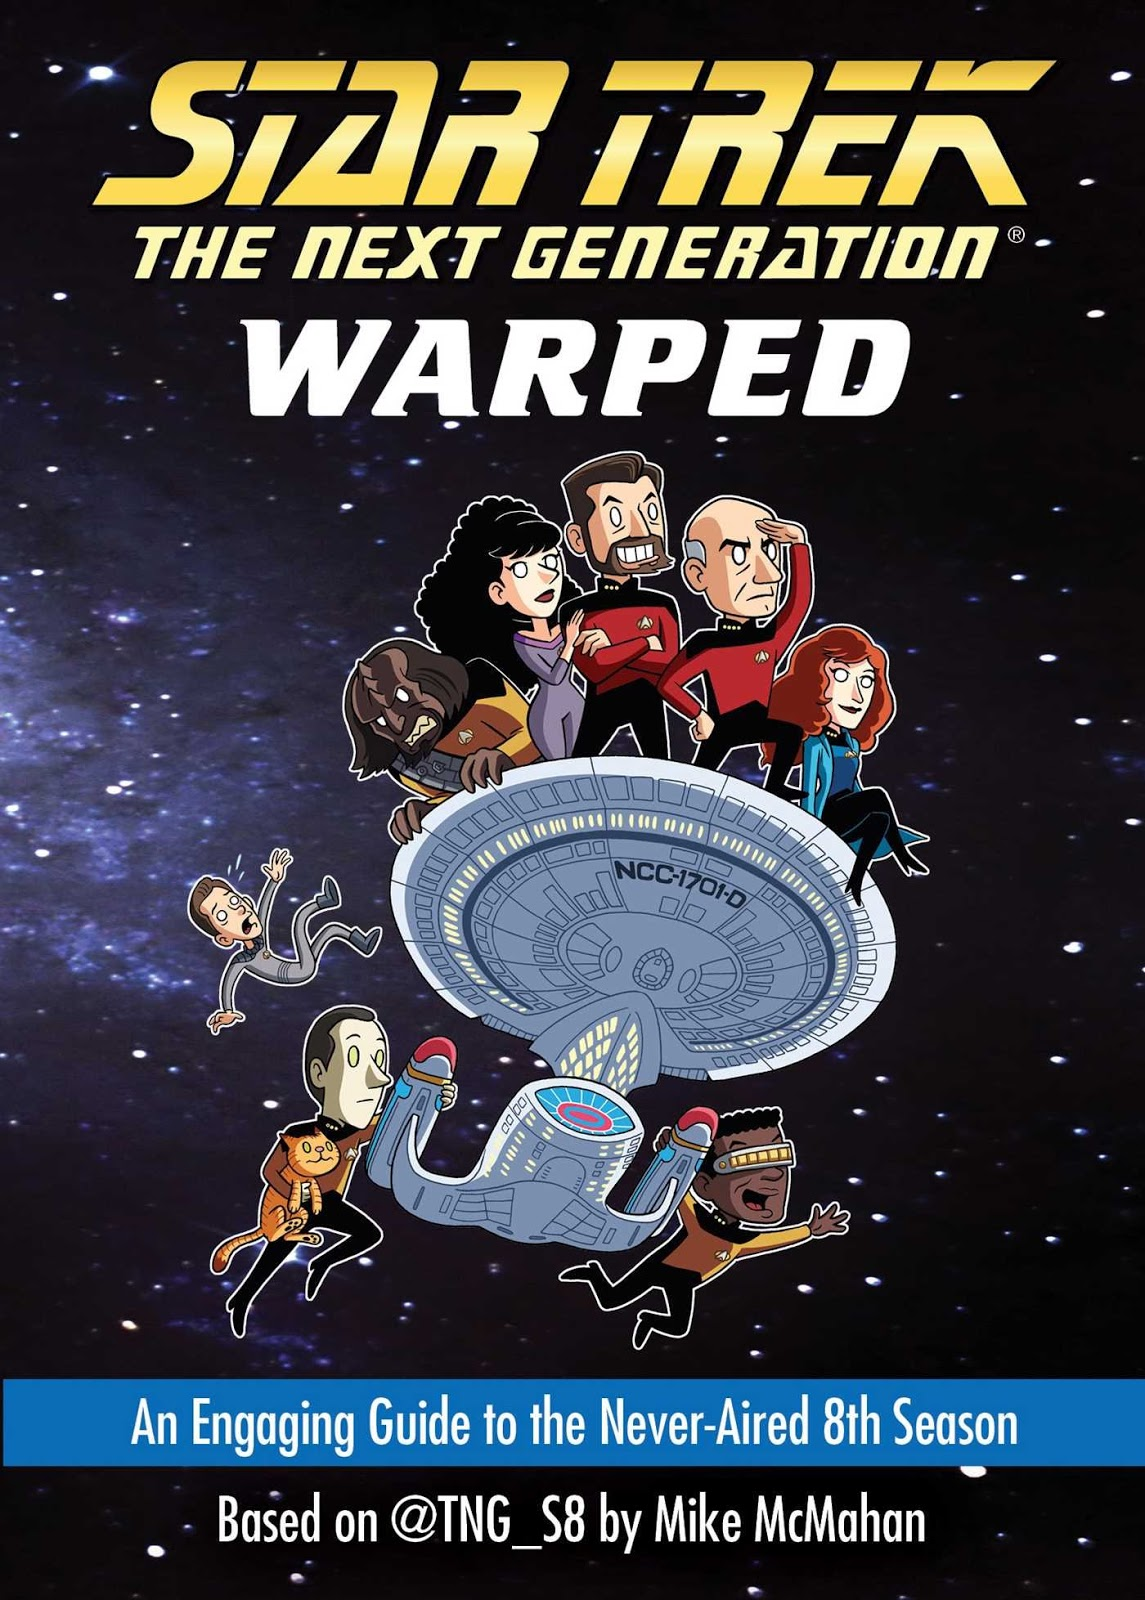 Star+Trek+The+Next+Generation+Warped+An+Engaging+Guide+to+the+Never-Aired+8th+Season